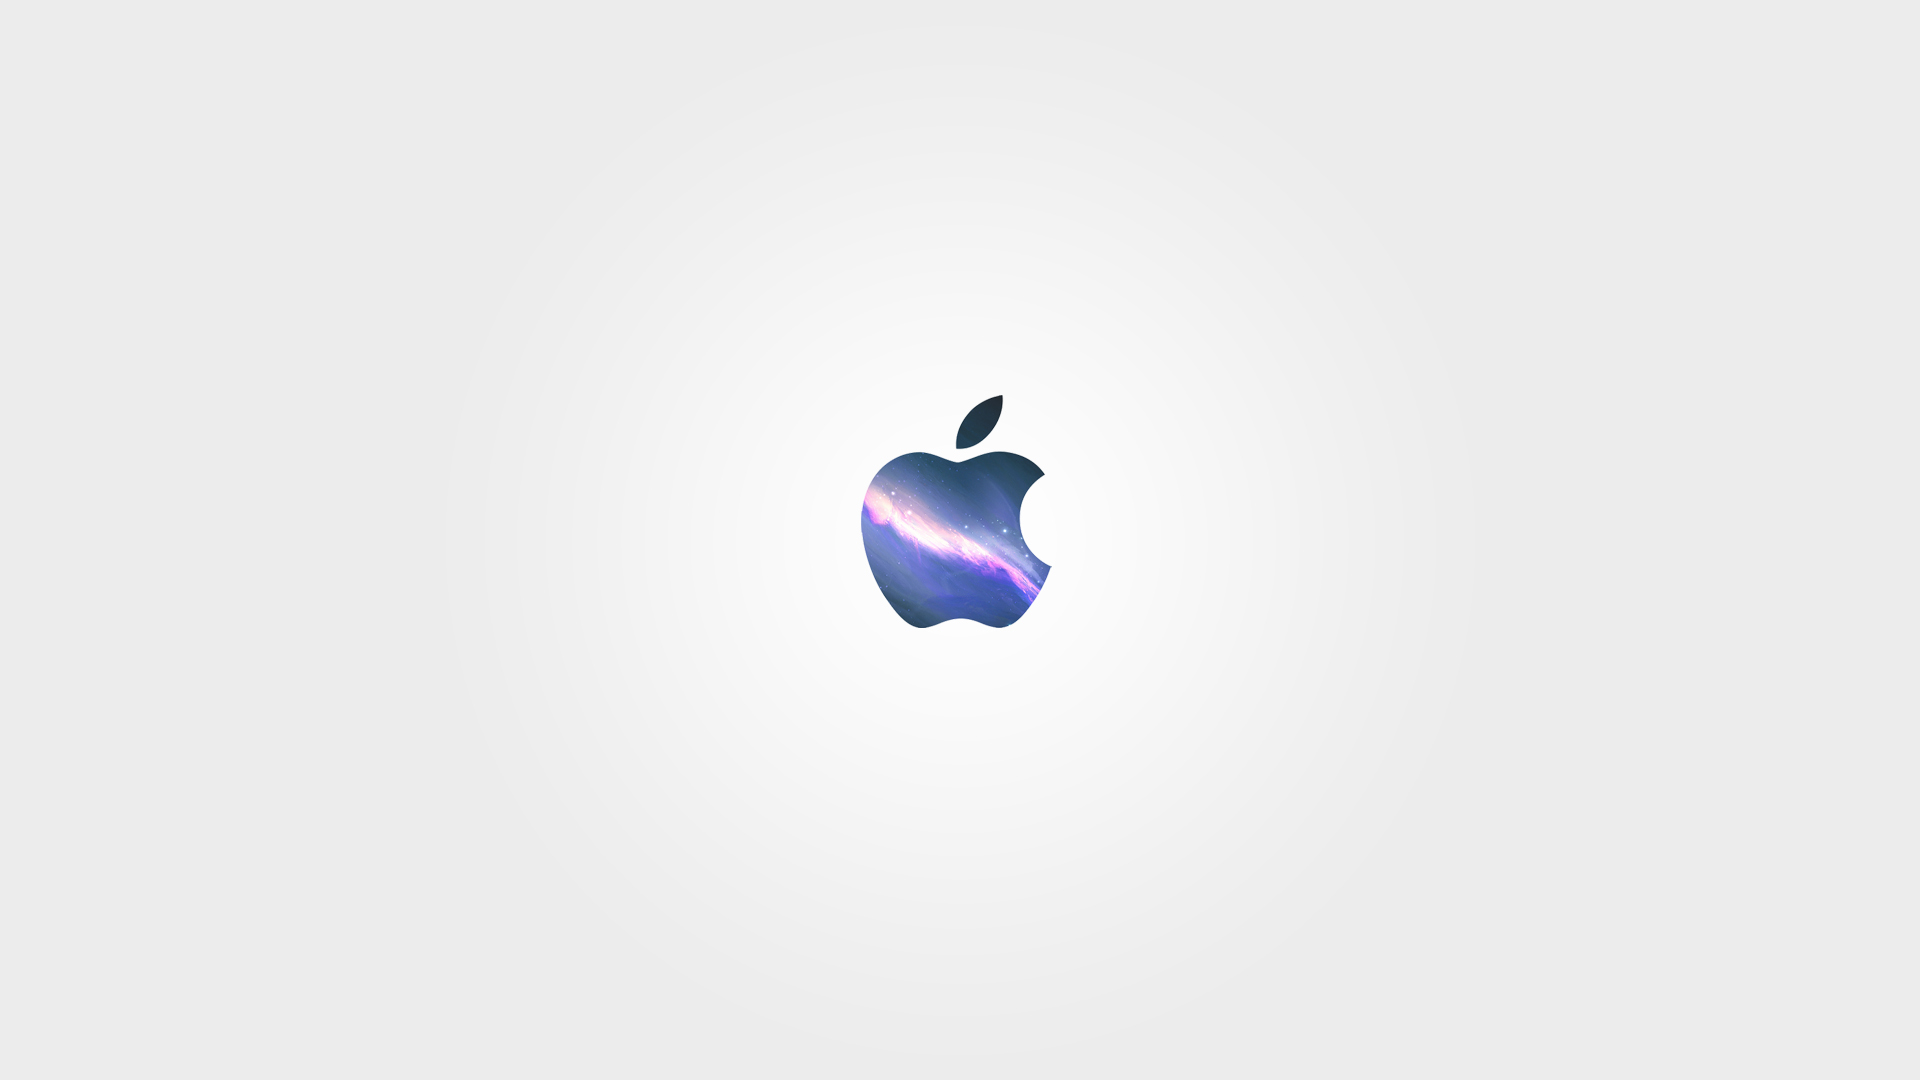 Wallpaper For Apple Computers Posted By Christopher Sellers